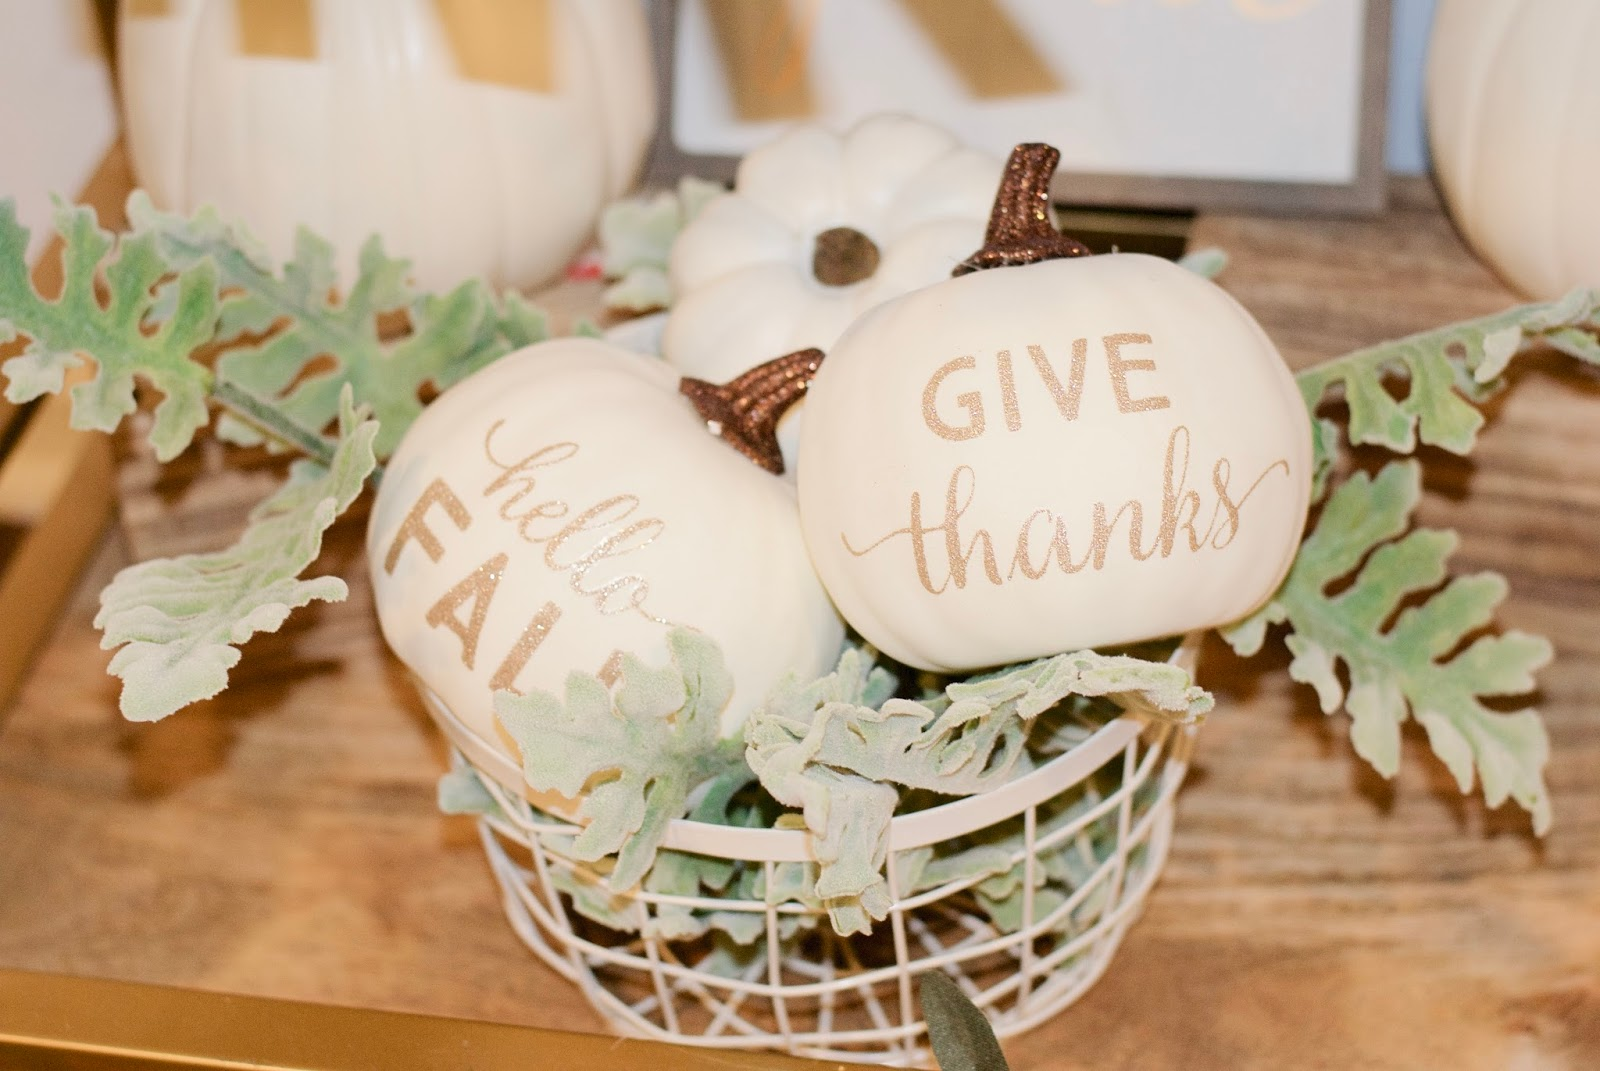 Give Thanks Bar Cart | PRETTY TWINKLE PARTY